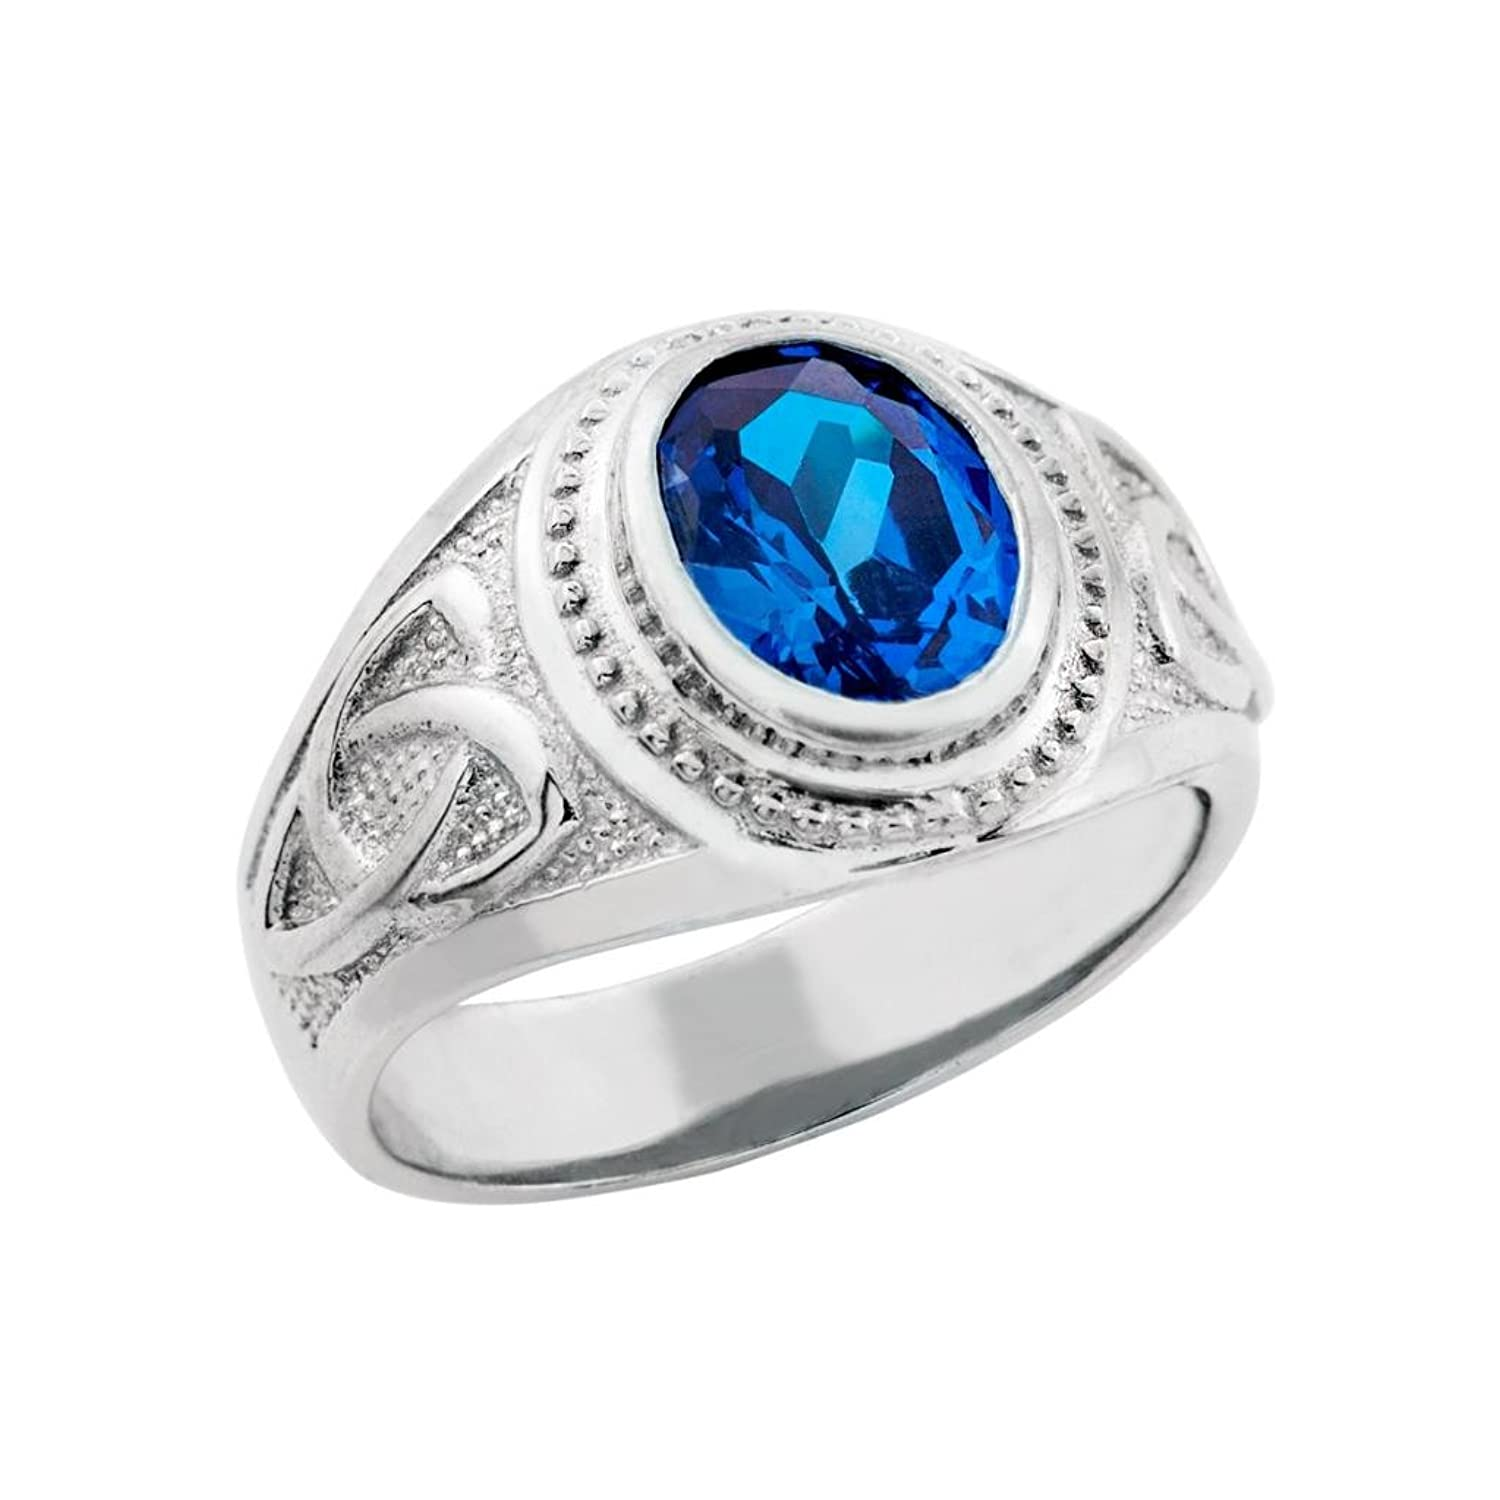 eve to heart s design addiction birthstone silver swirl close ring sterling the two stone rings